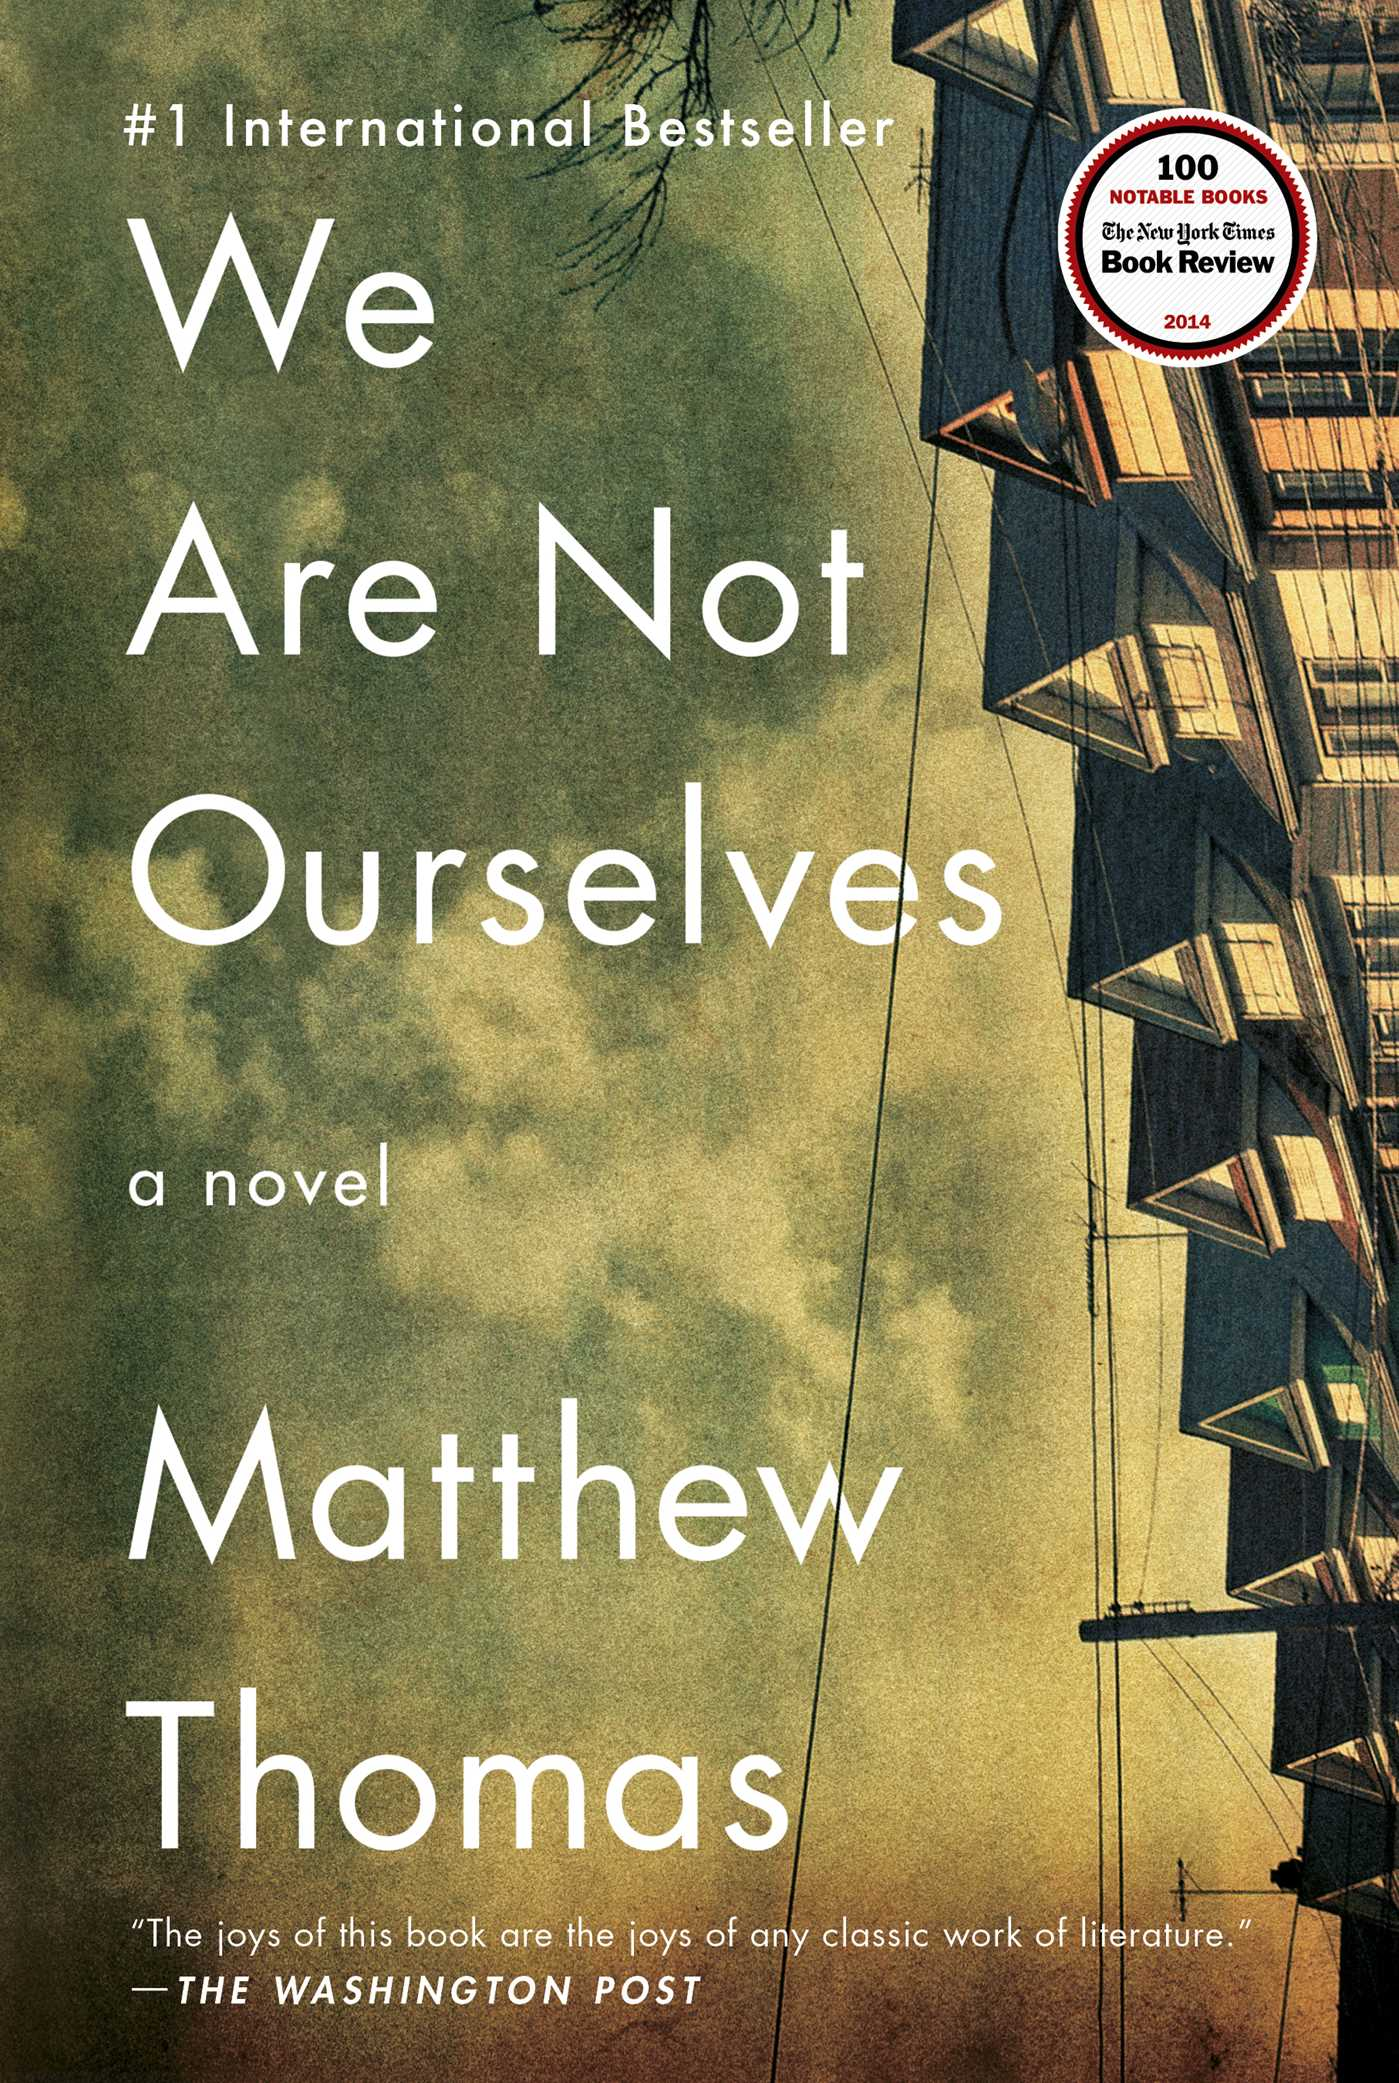 Book Cover Image (jpg): We Are Not Ourselves